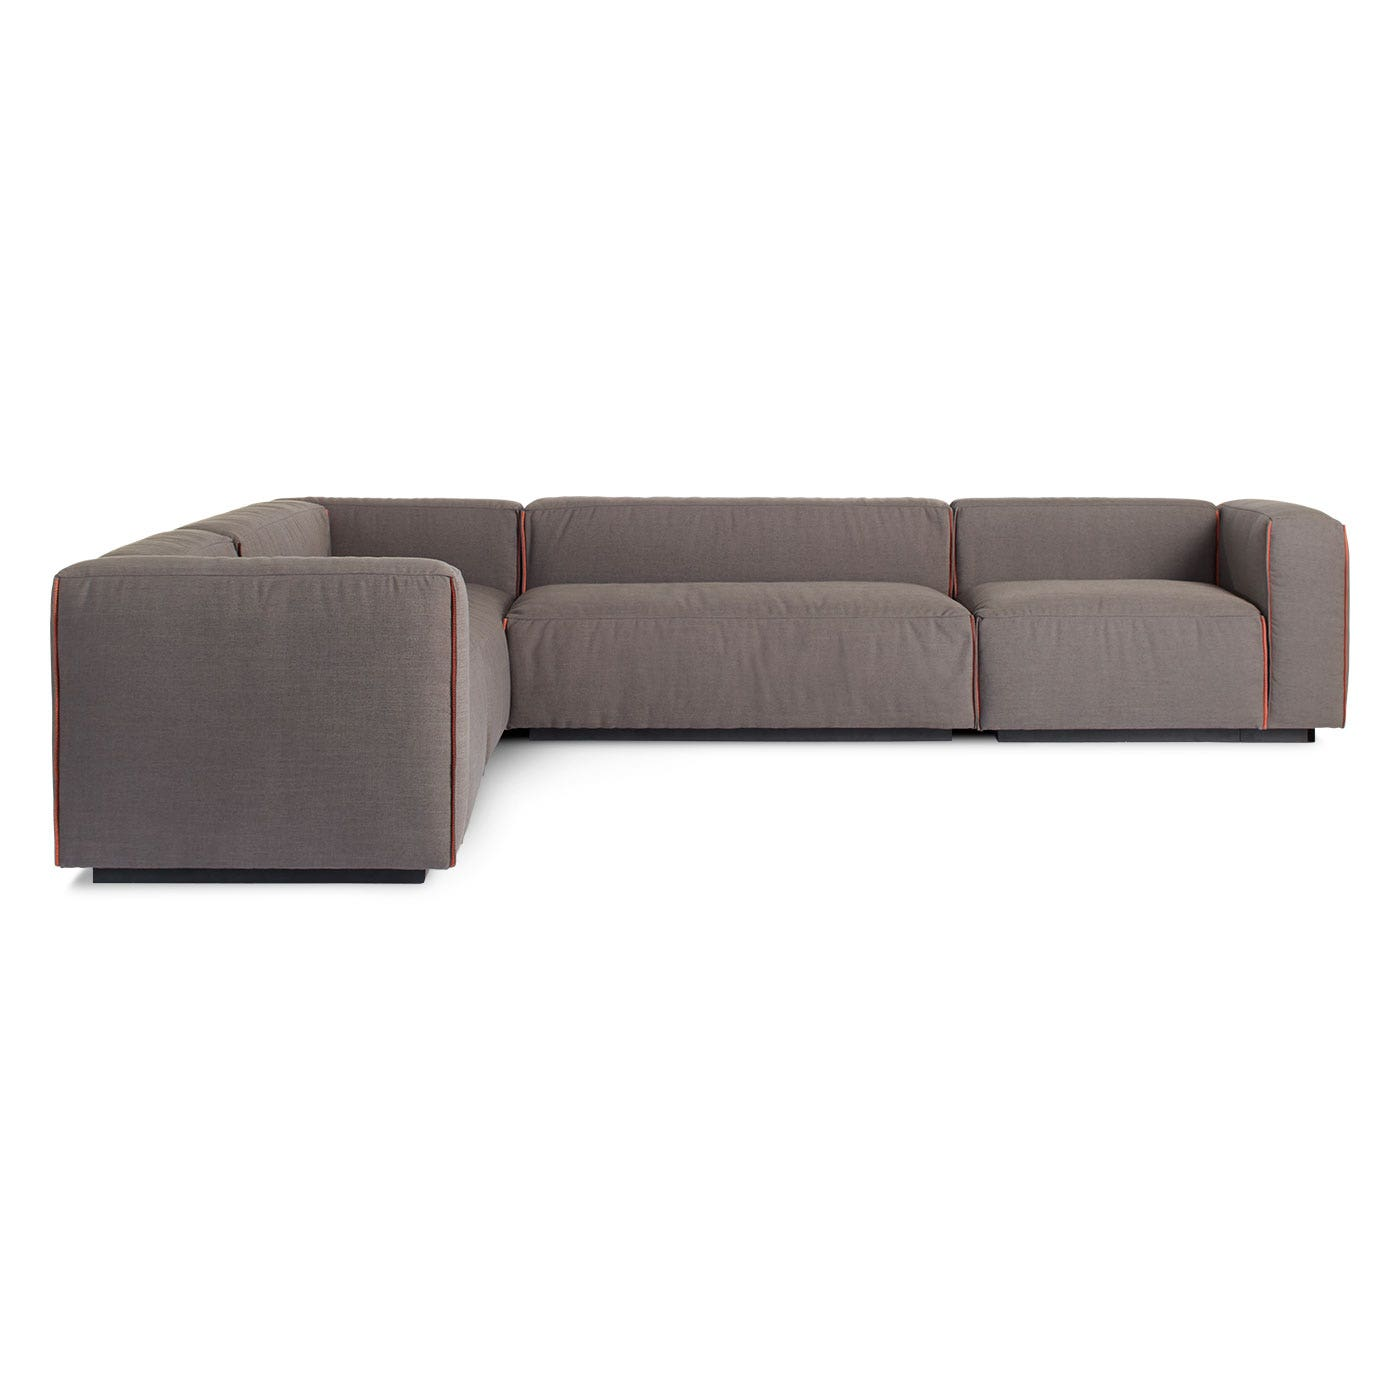 Cleon Modern Sectional Sofa